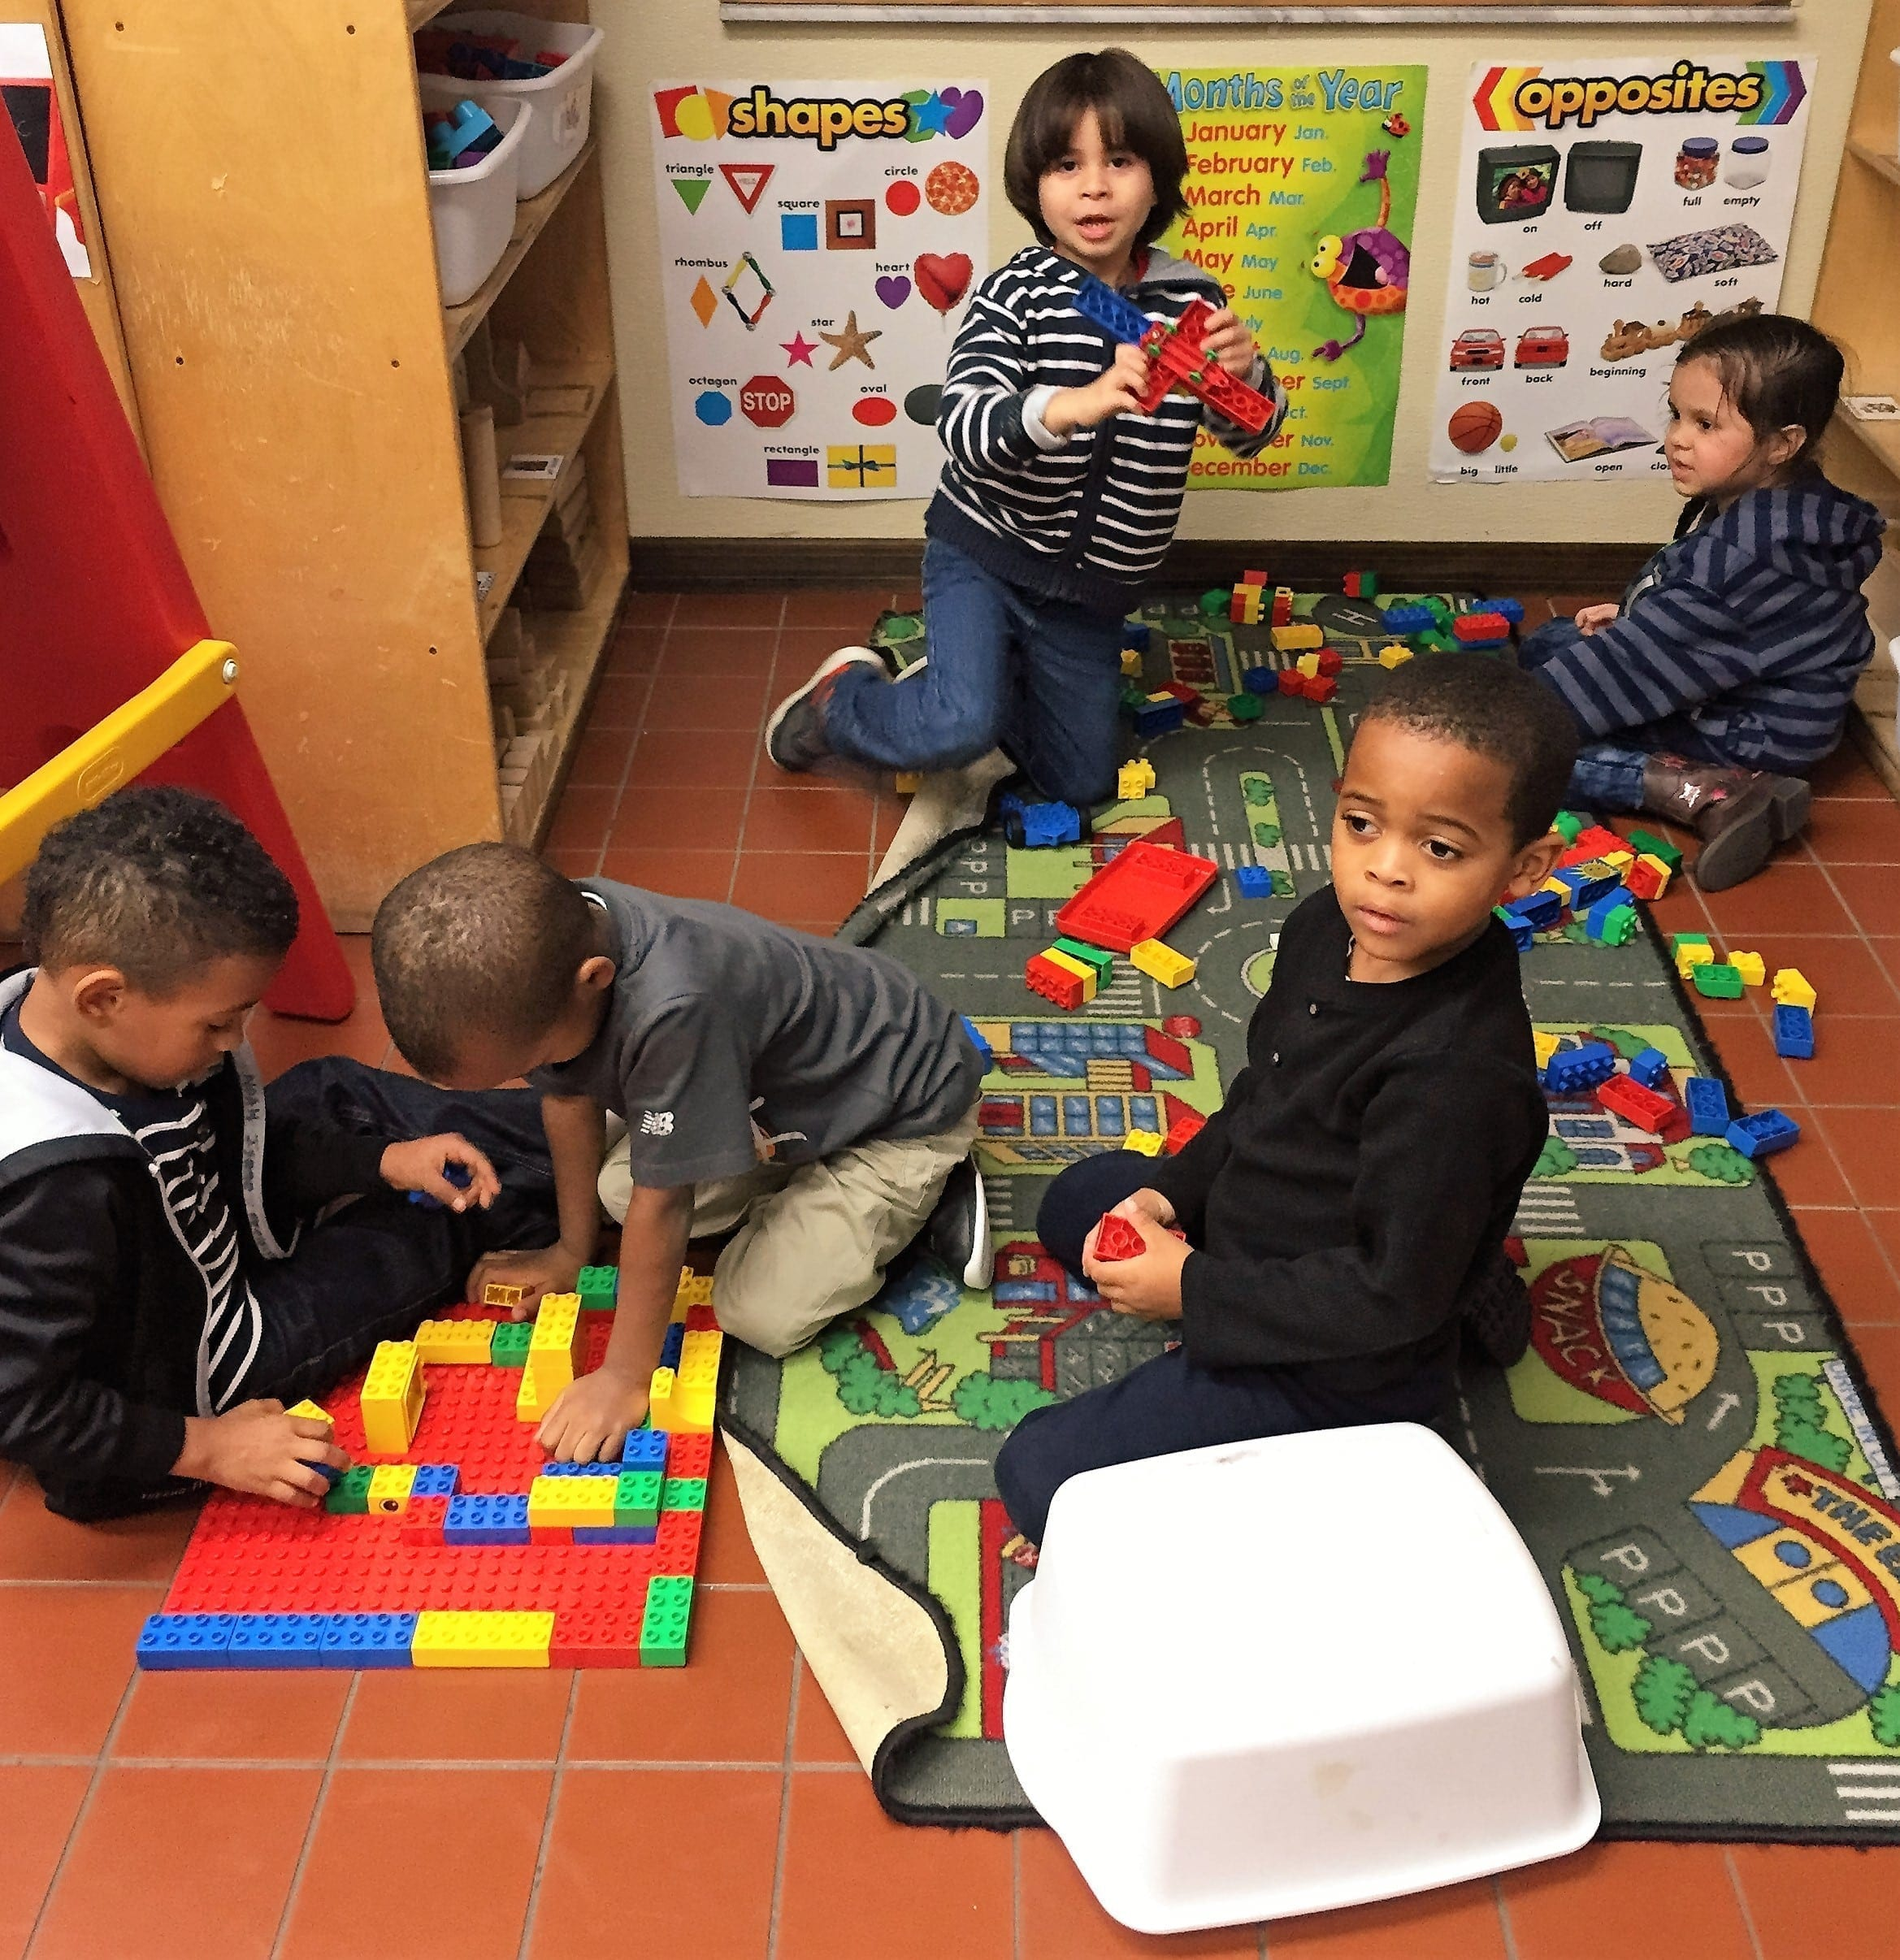 Our study for the month is buildings VPK